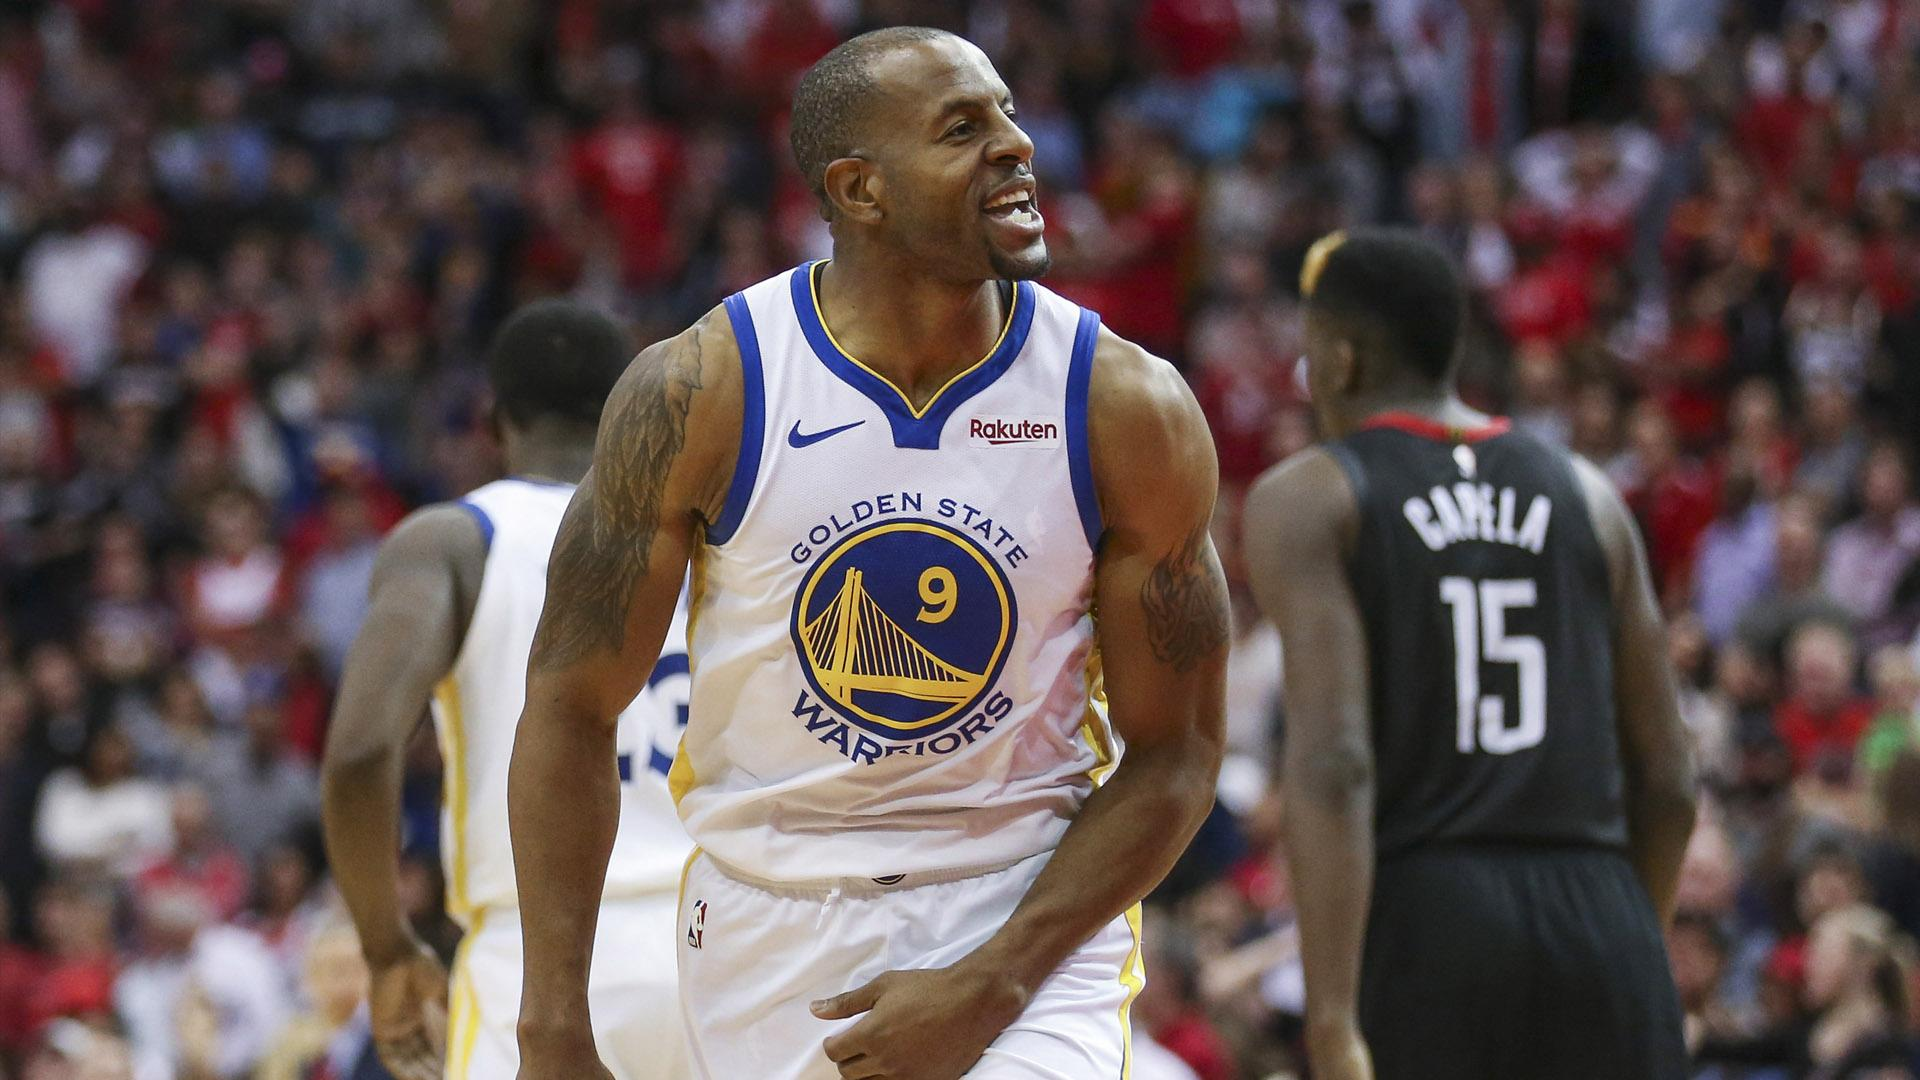 b5a5de15e607 Andre Iguodala will be key for Warriors to get past James Harden ...